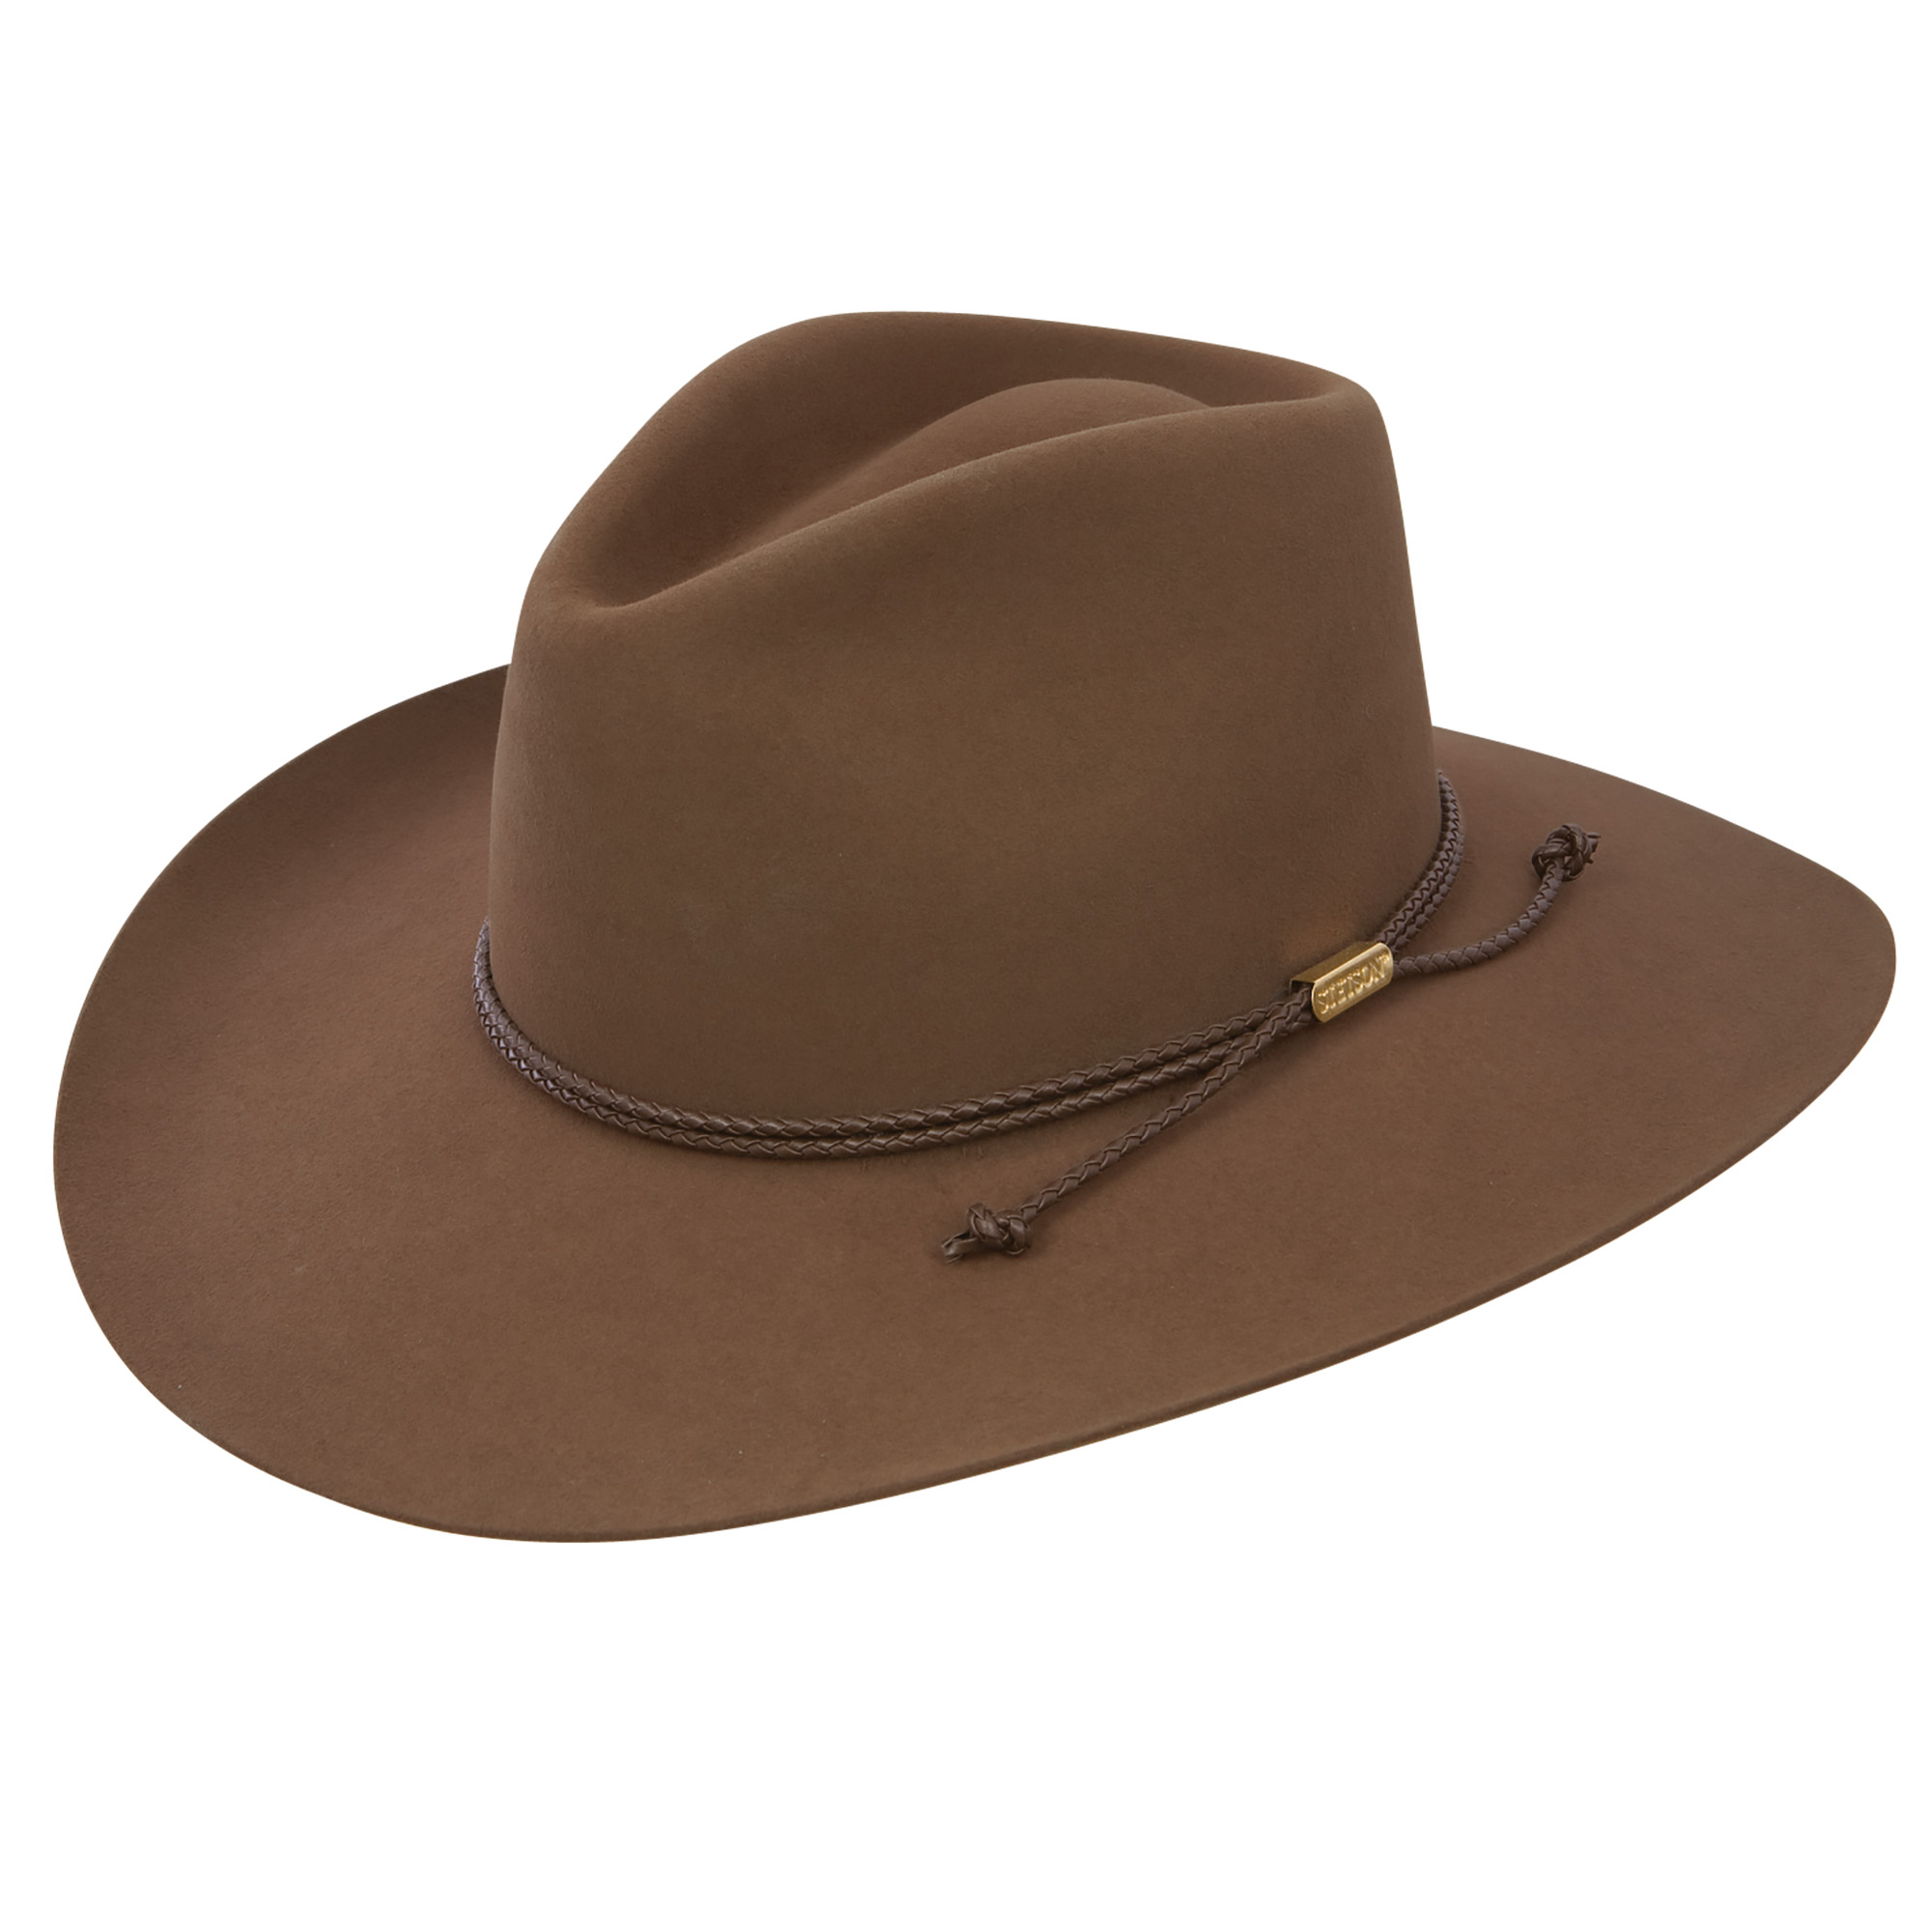 Stetson Carson 6X Felt Hat. Tap to expand f159ece182ab